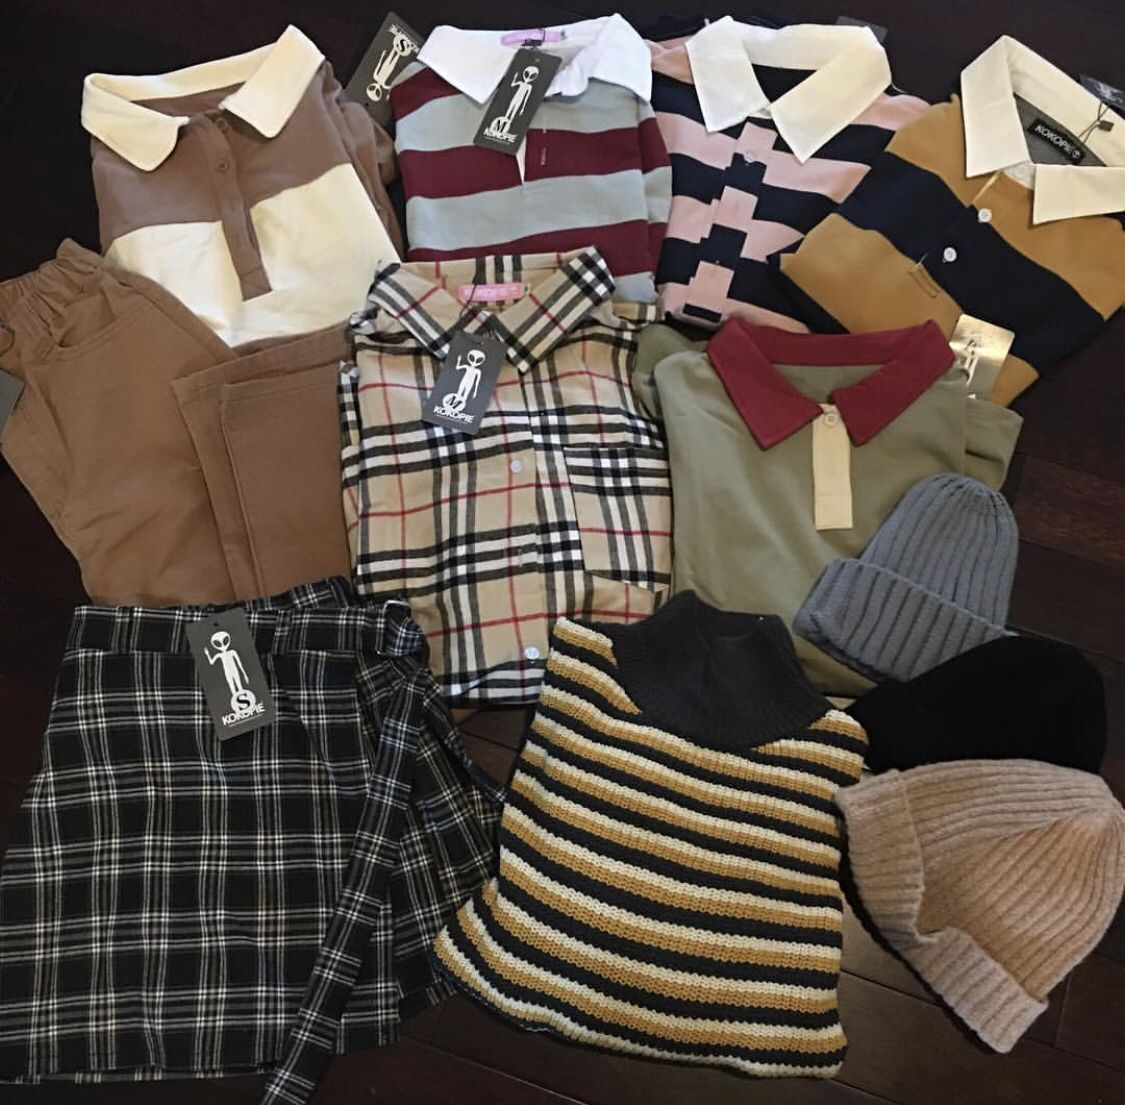 Aesthetic Guy Clothing Stores